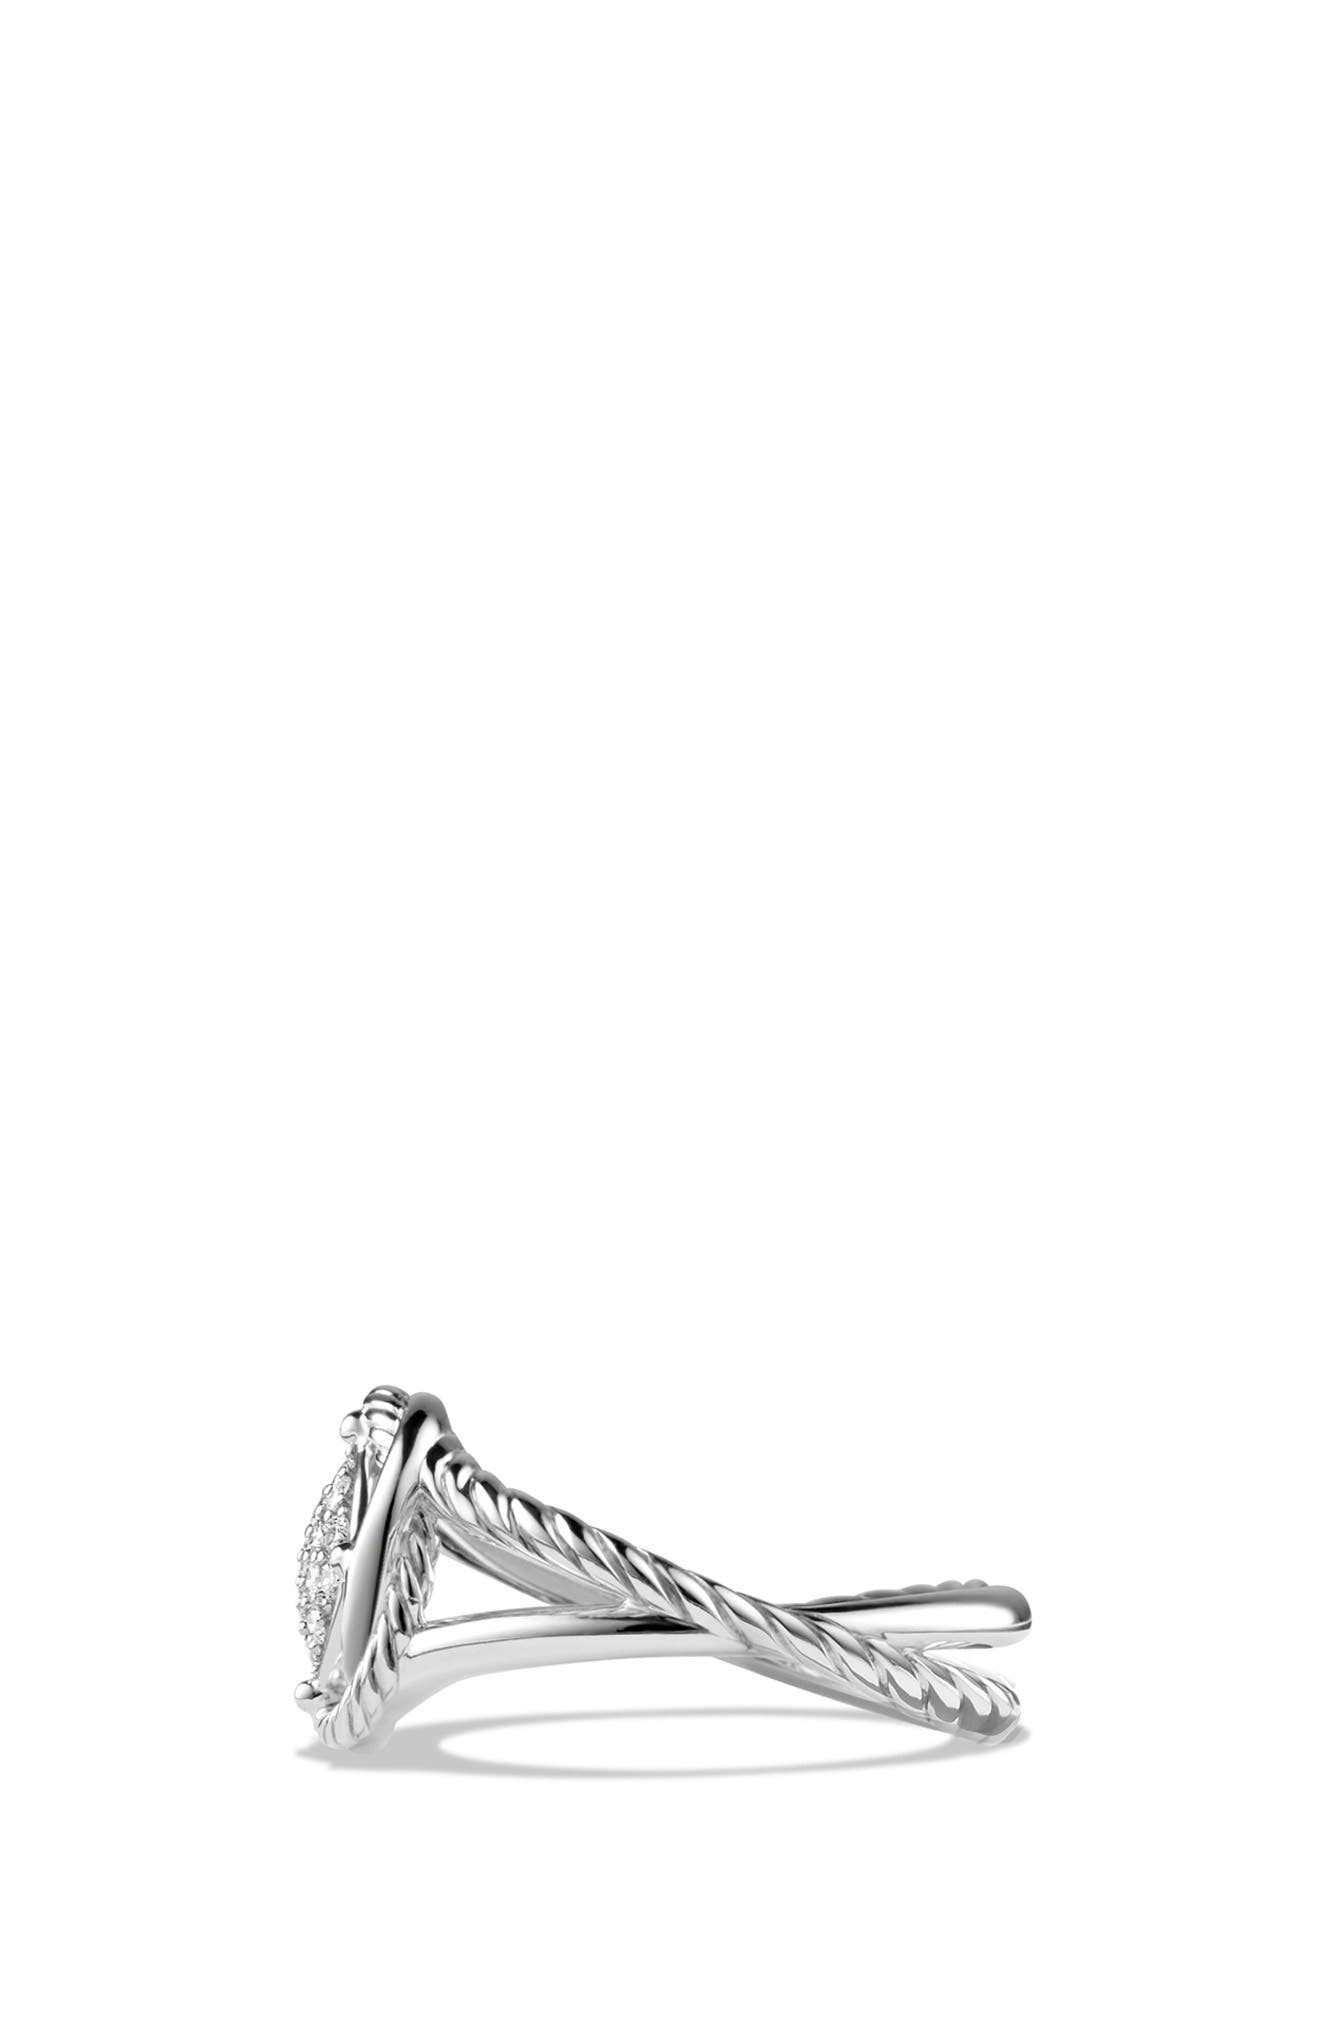 'Infinity' Ring with Diamonds,                             Alternate thumbnail 3, color,                             DIAMOND